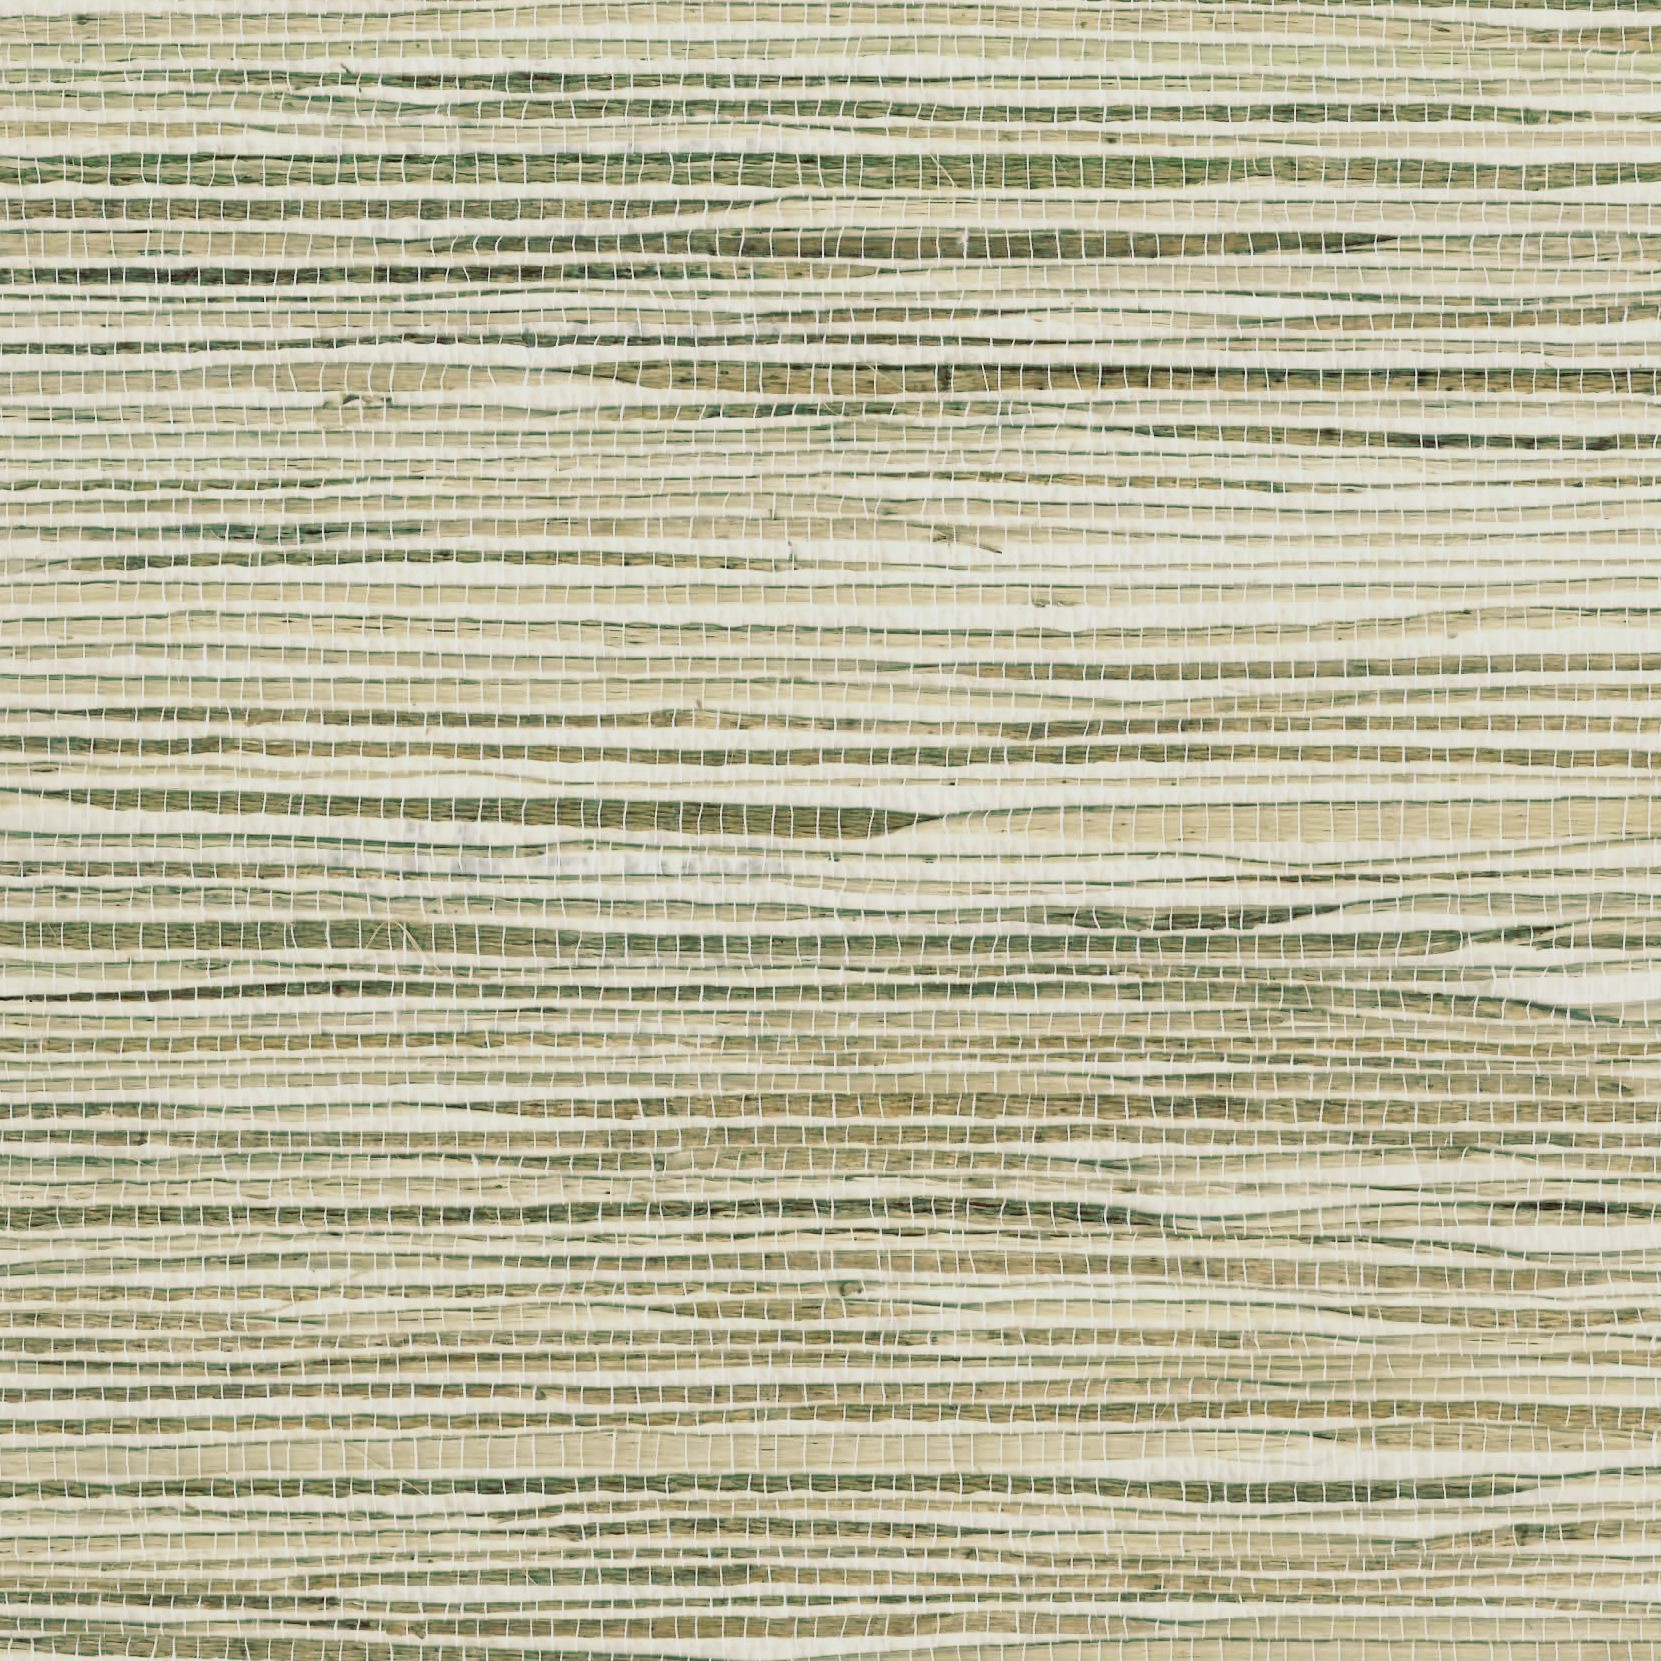 Discount Wallcovering Natural Raw Jute Grasscloth Wallpaper NEP413